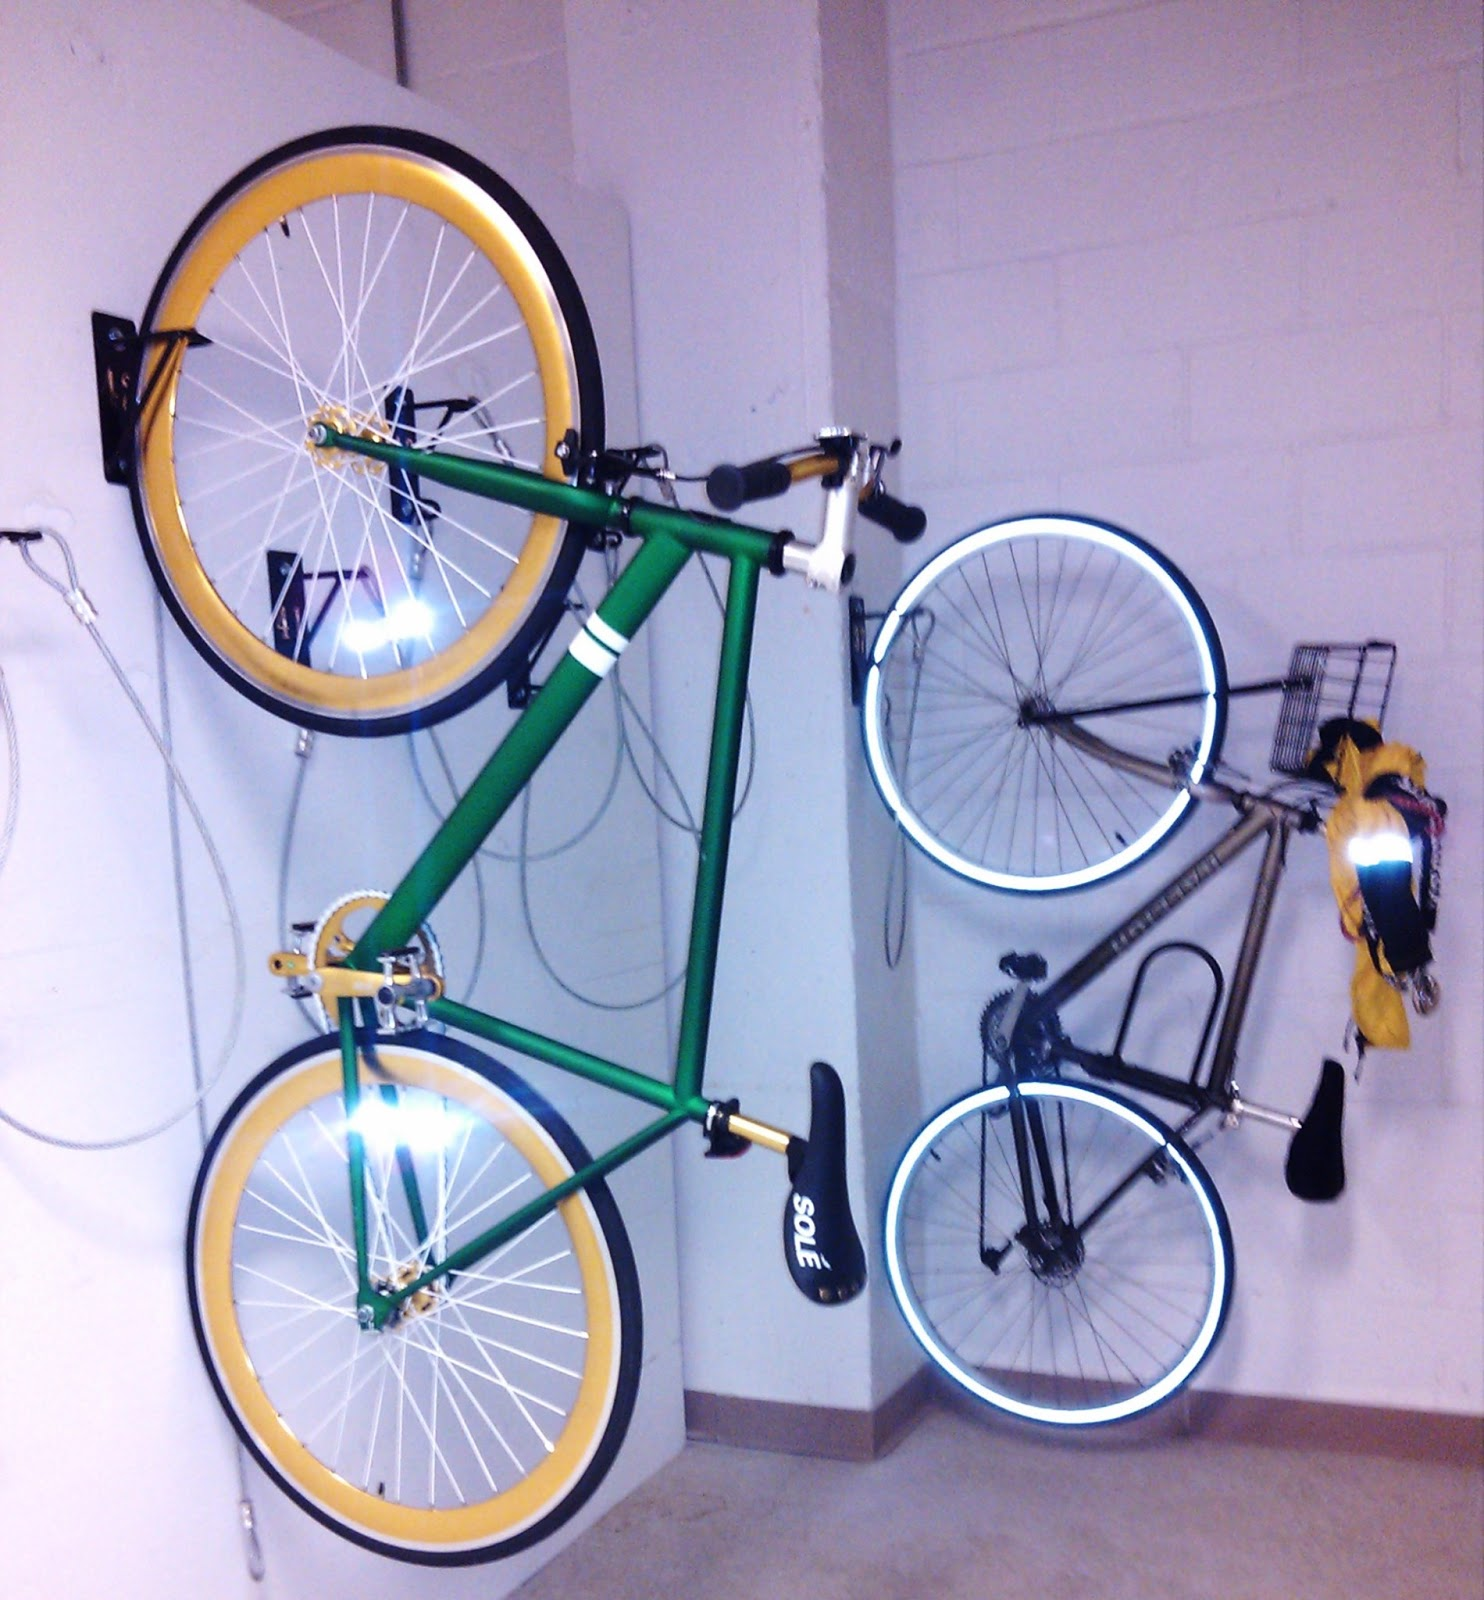 Wall Mount Bike Racks How To Organize A Space Efficient Bike Room